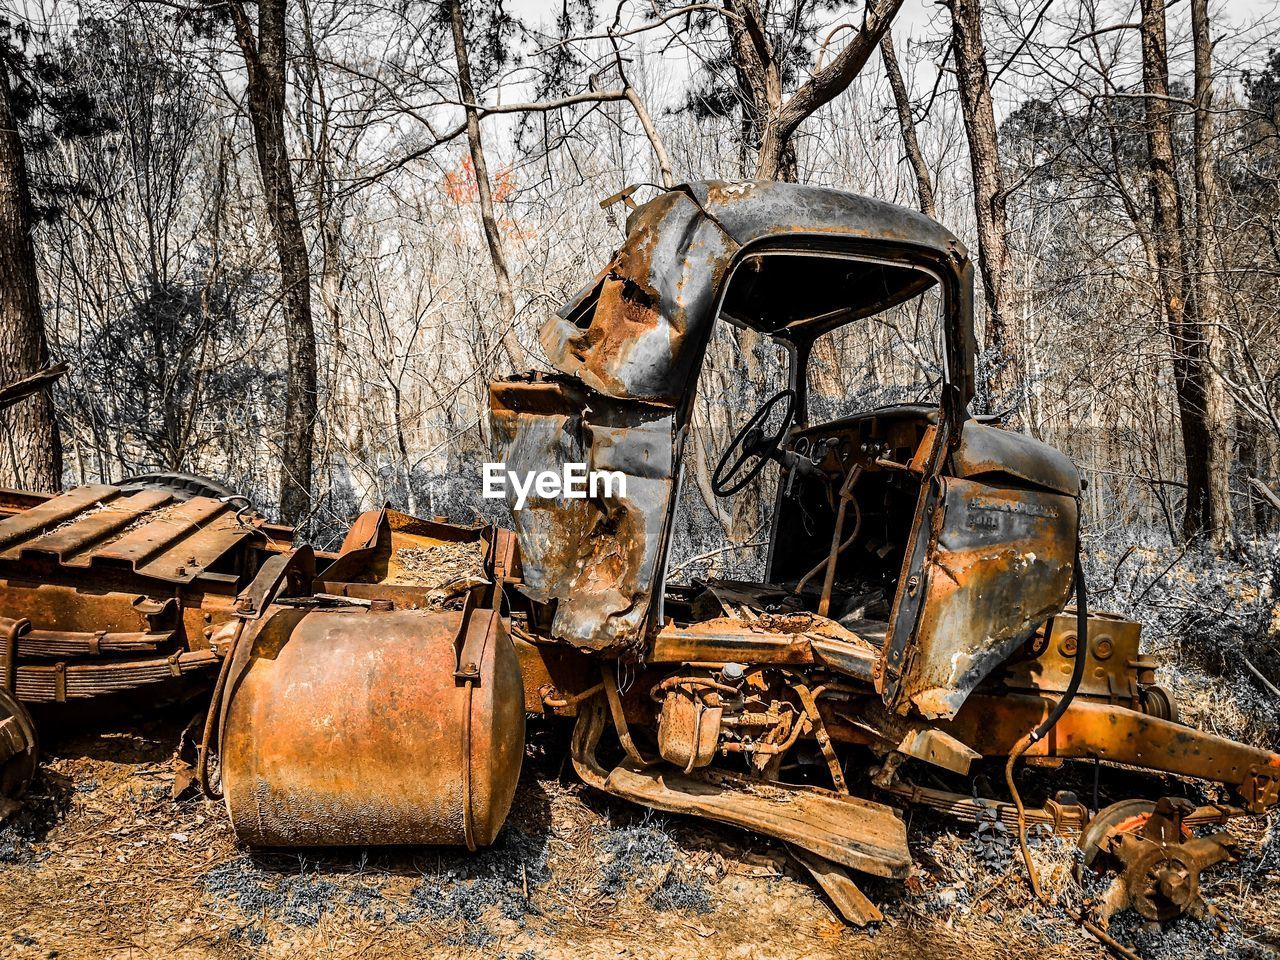 View of abandoned vehicle in forest